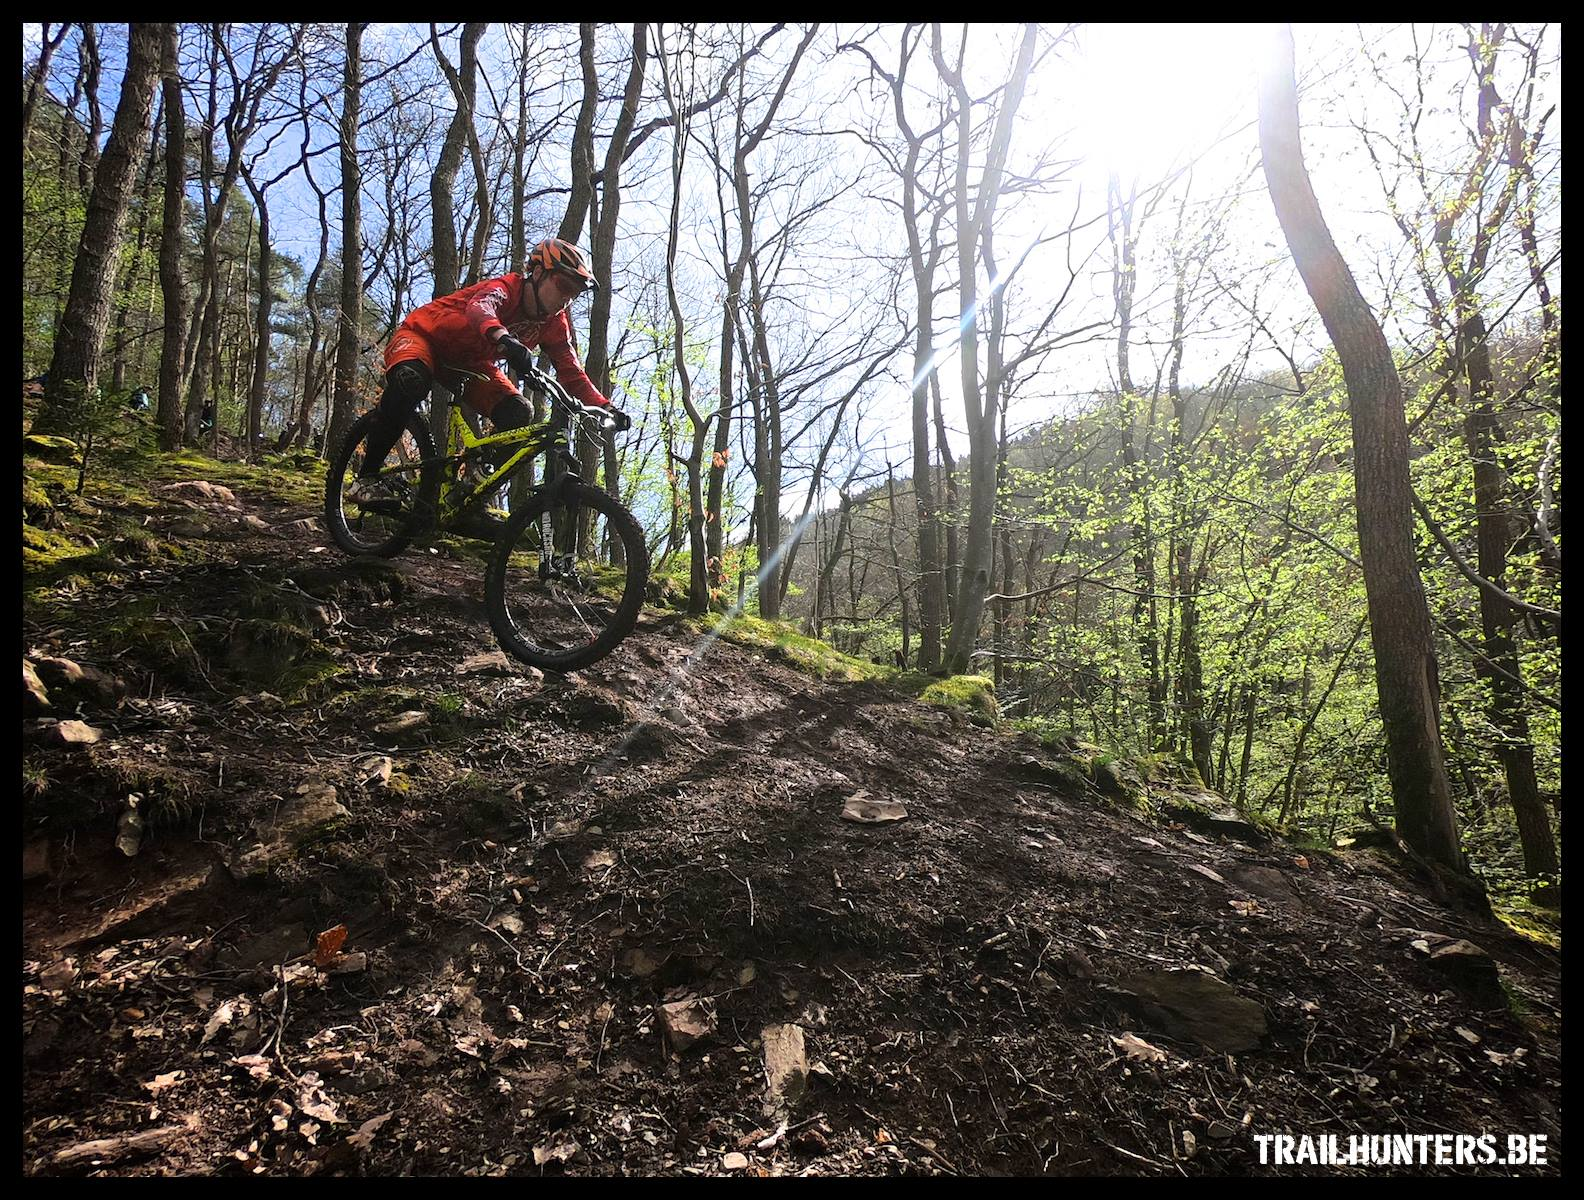 Trailhunters_trailaddicts_ride_2